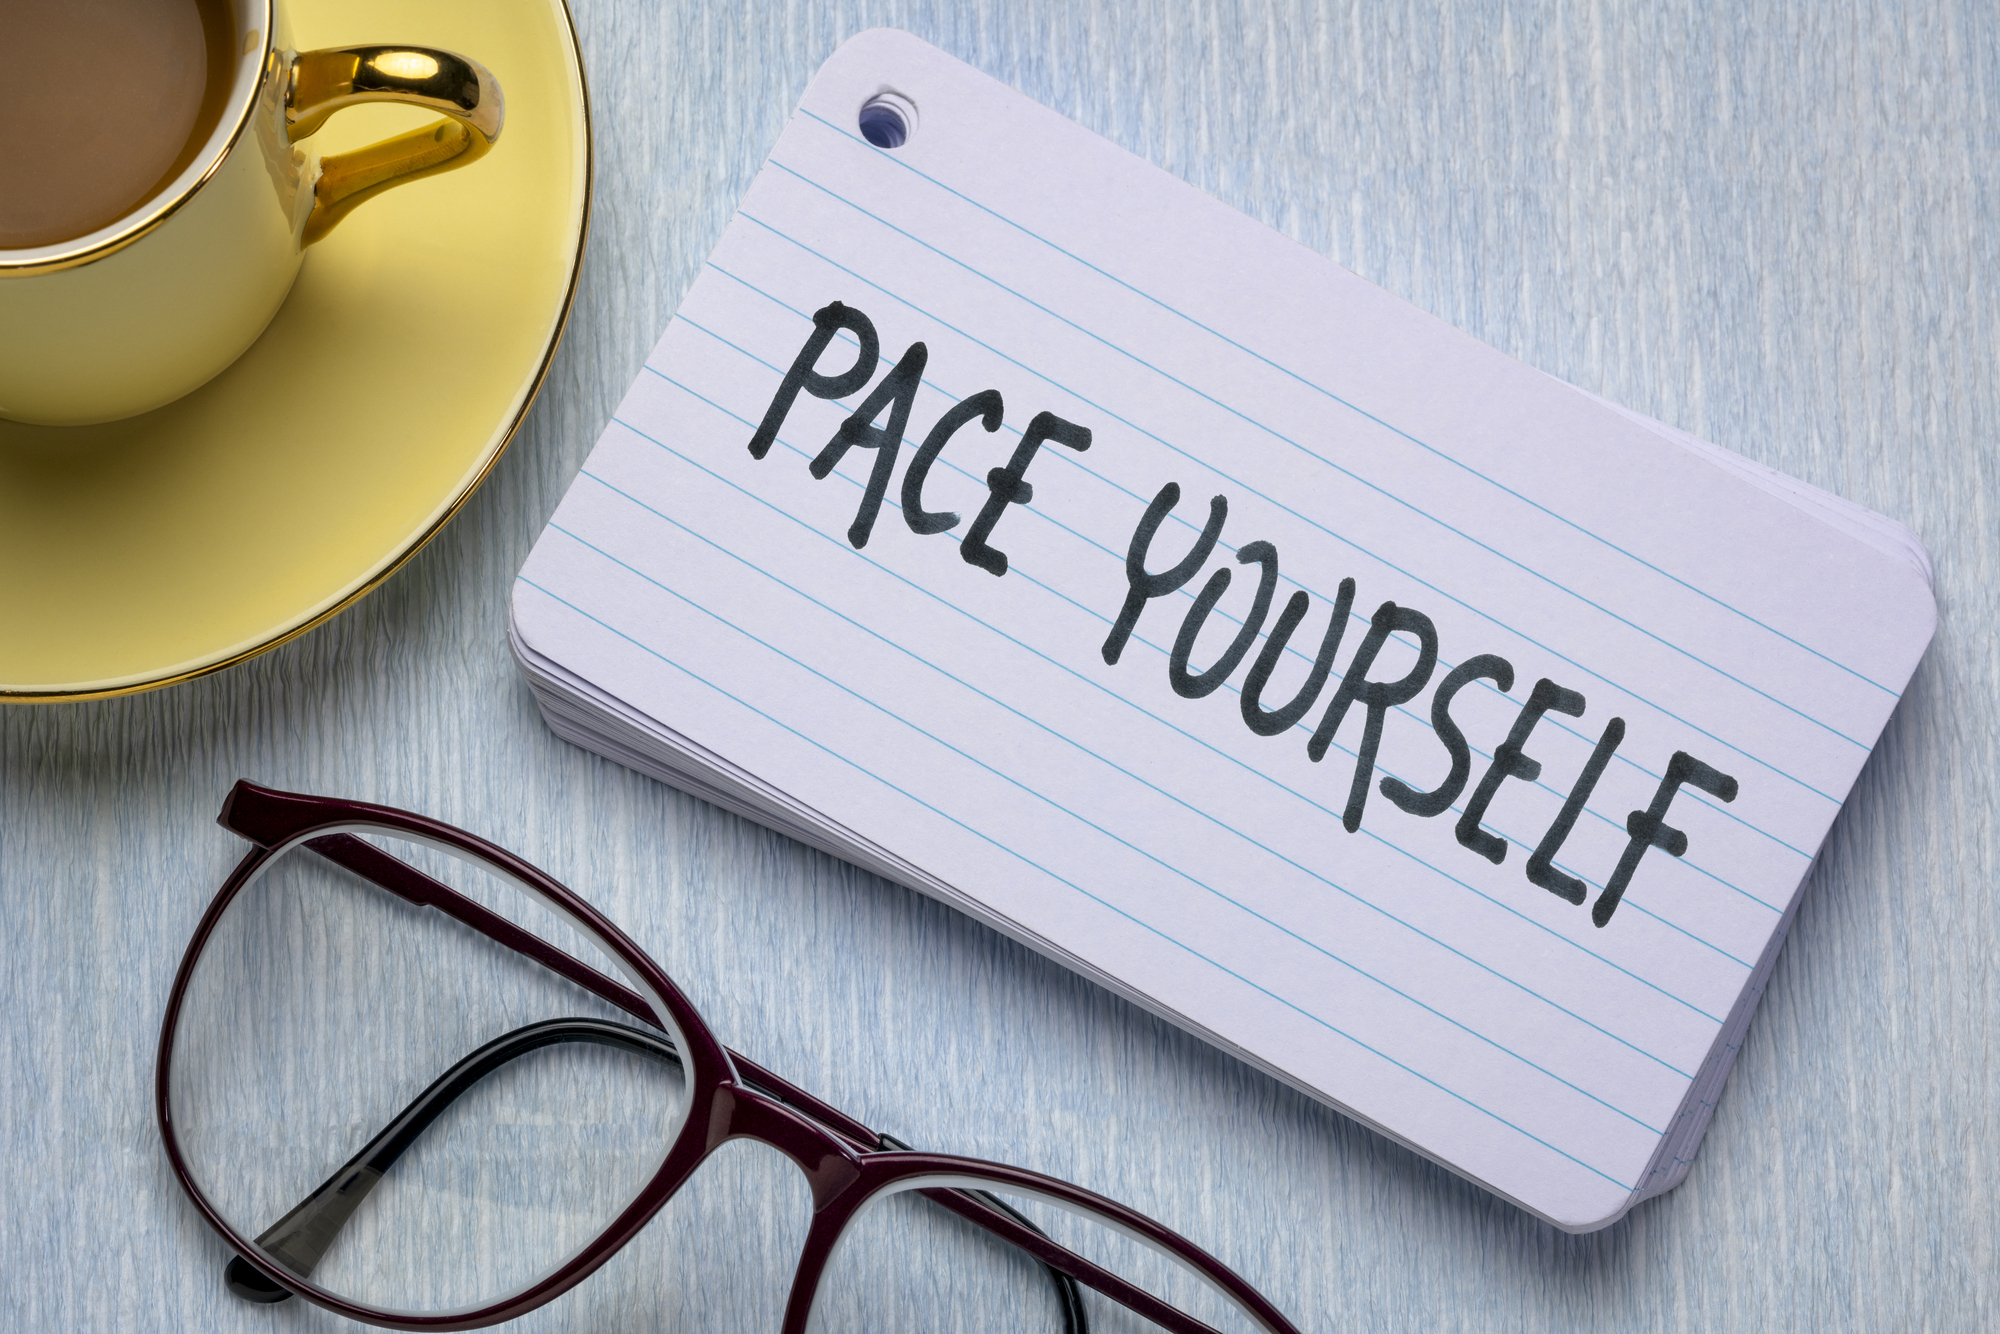 Pace yourself reminder - handwriting on index card with a cup of coffee, business and lifestyle